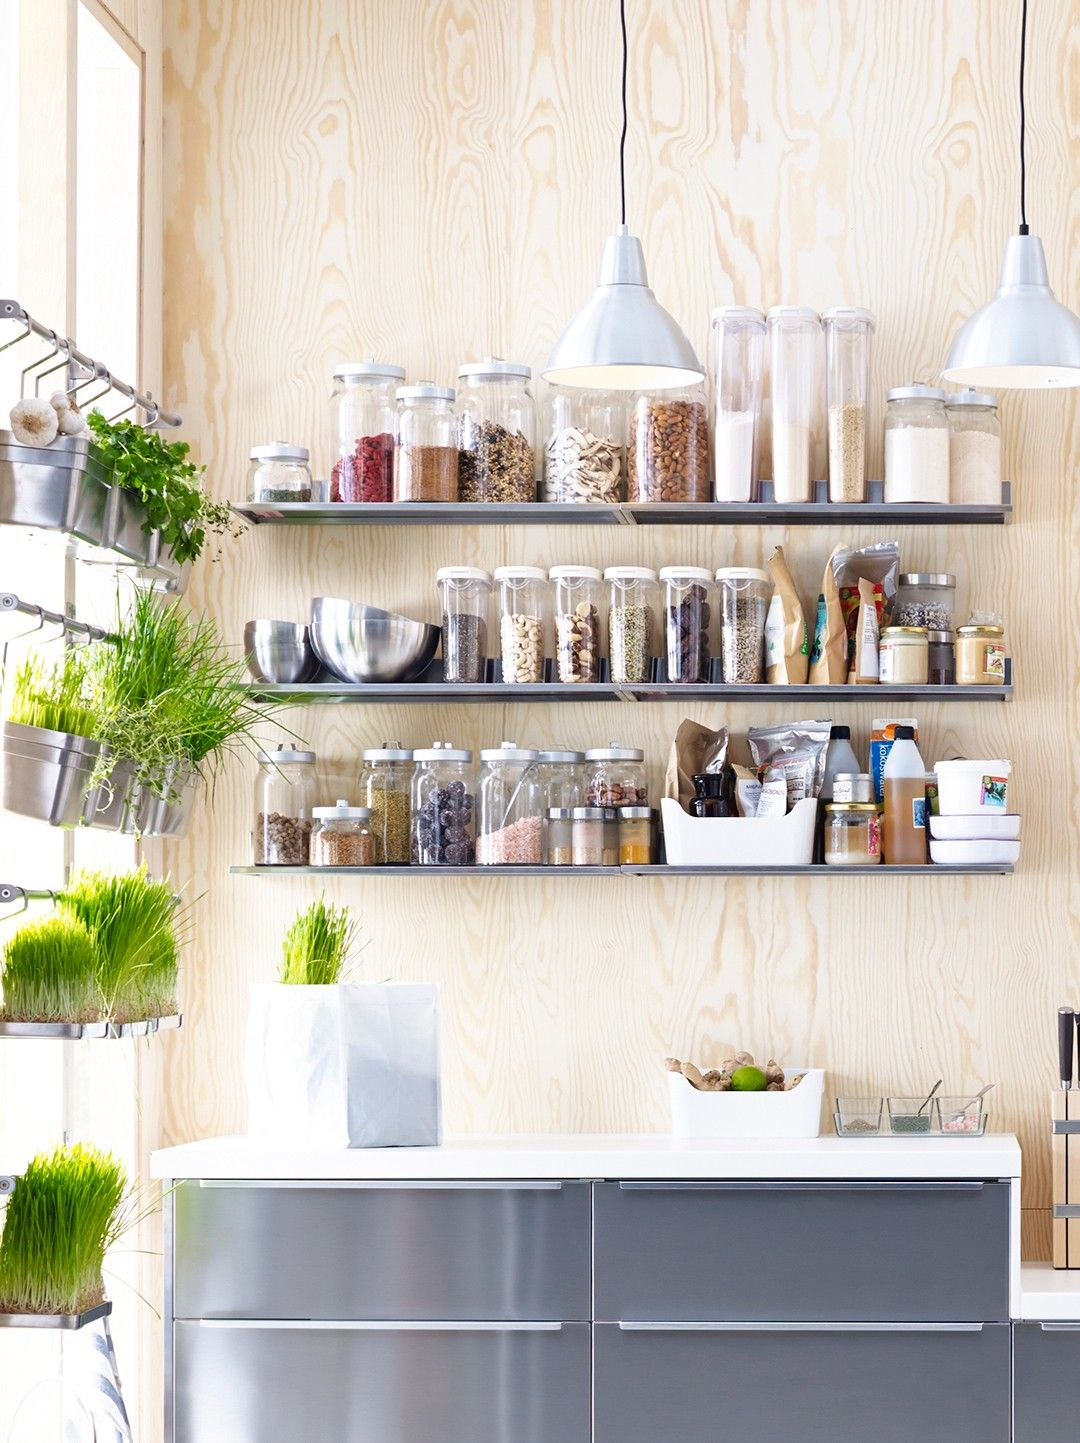 60 smart kitchen storage ideas for small spaces kitchenstorageidea small kitchen storage on kitchen organization layout id=15796